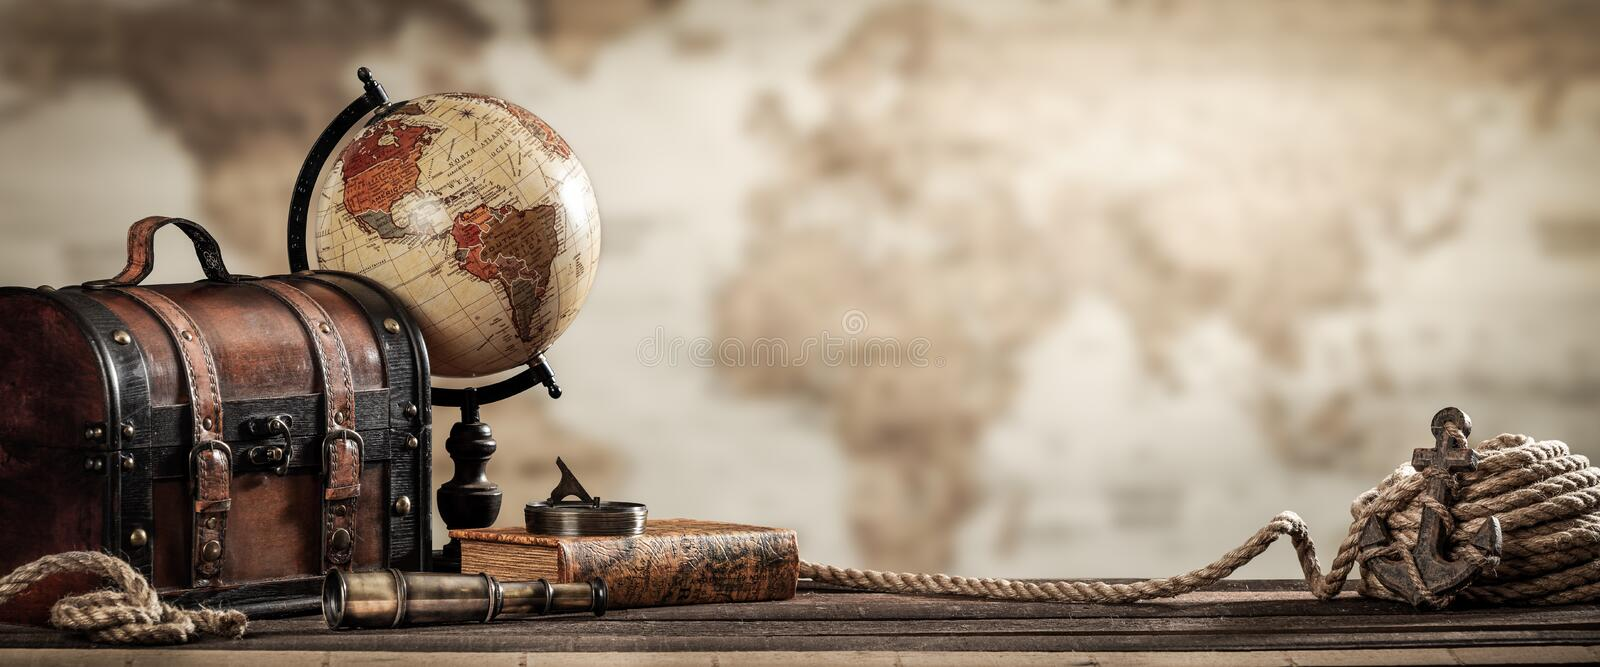 Vintage Nautical World Travel Concept Grunge Effect royalty free stock photo